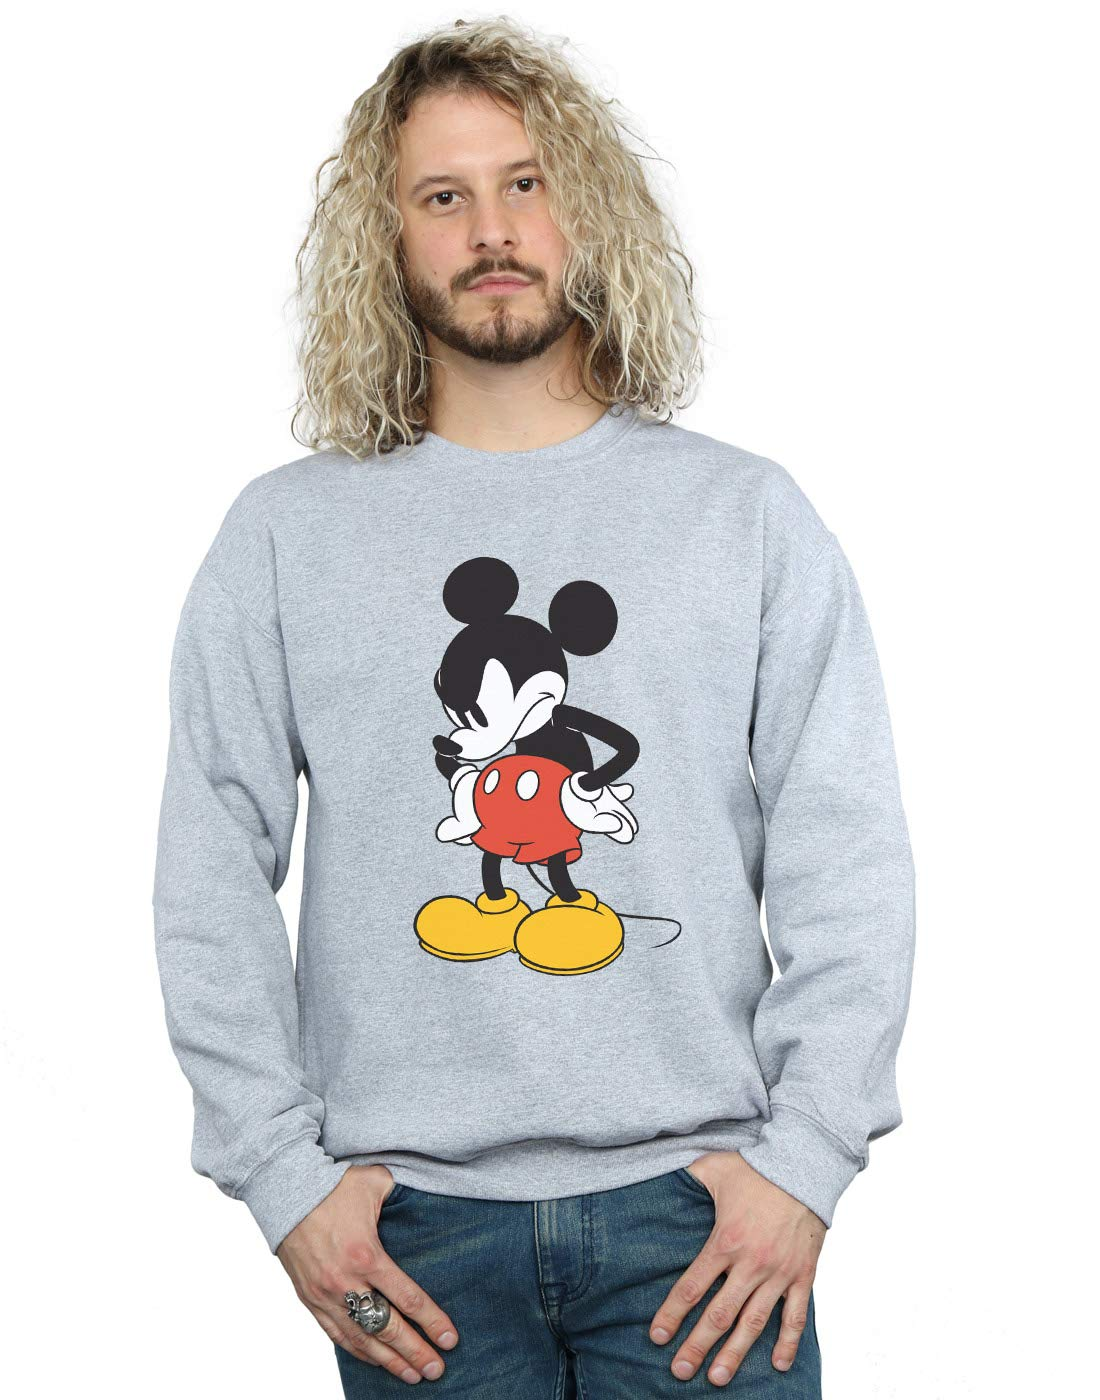 Disney S Mickey Mouse Angry Look Down Shirts